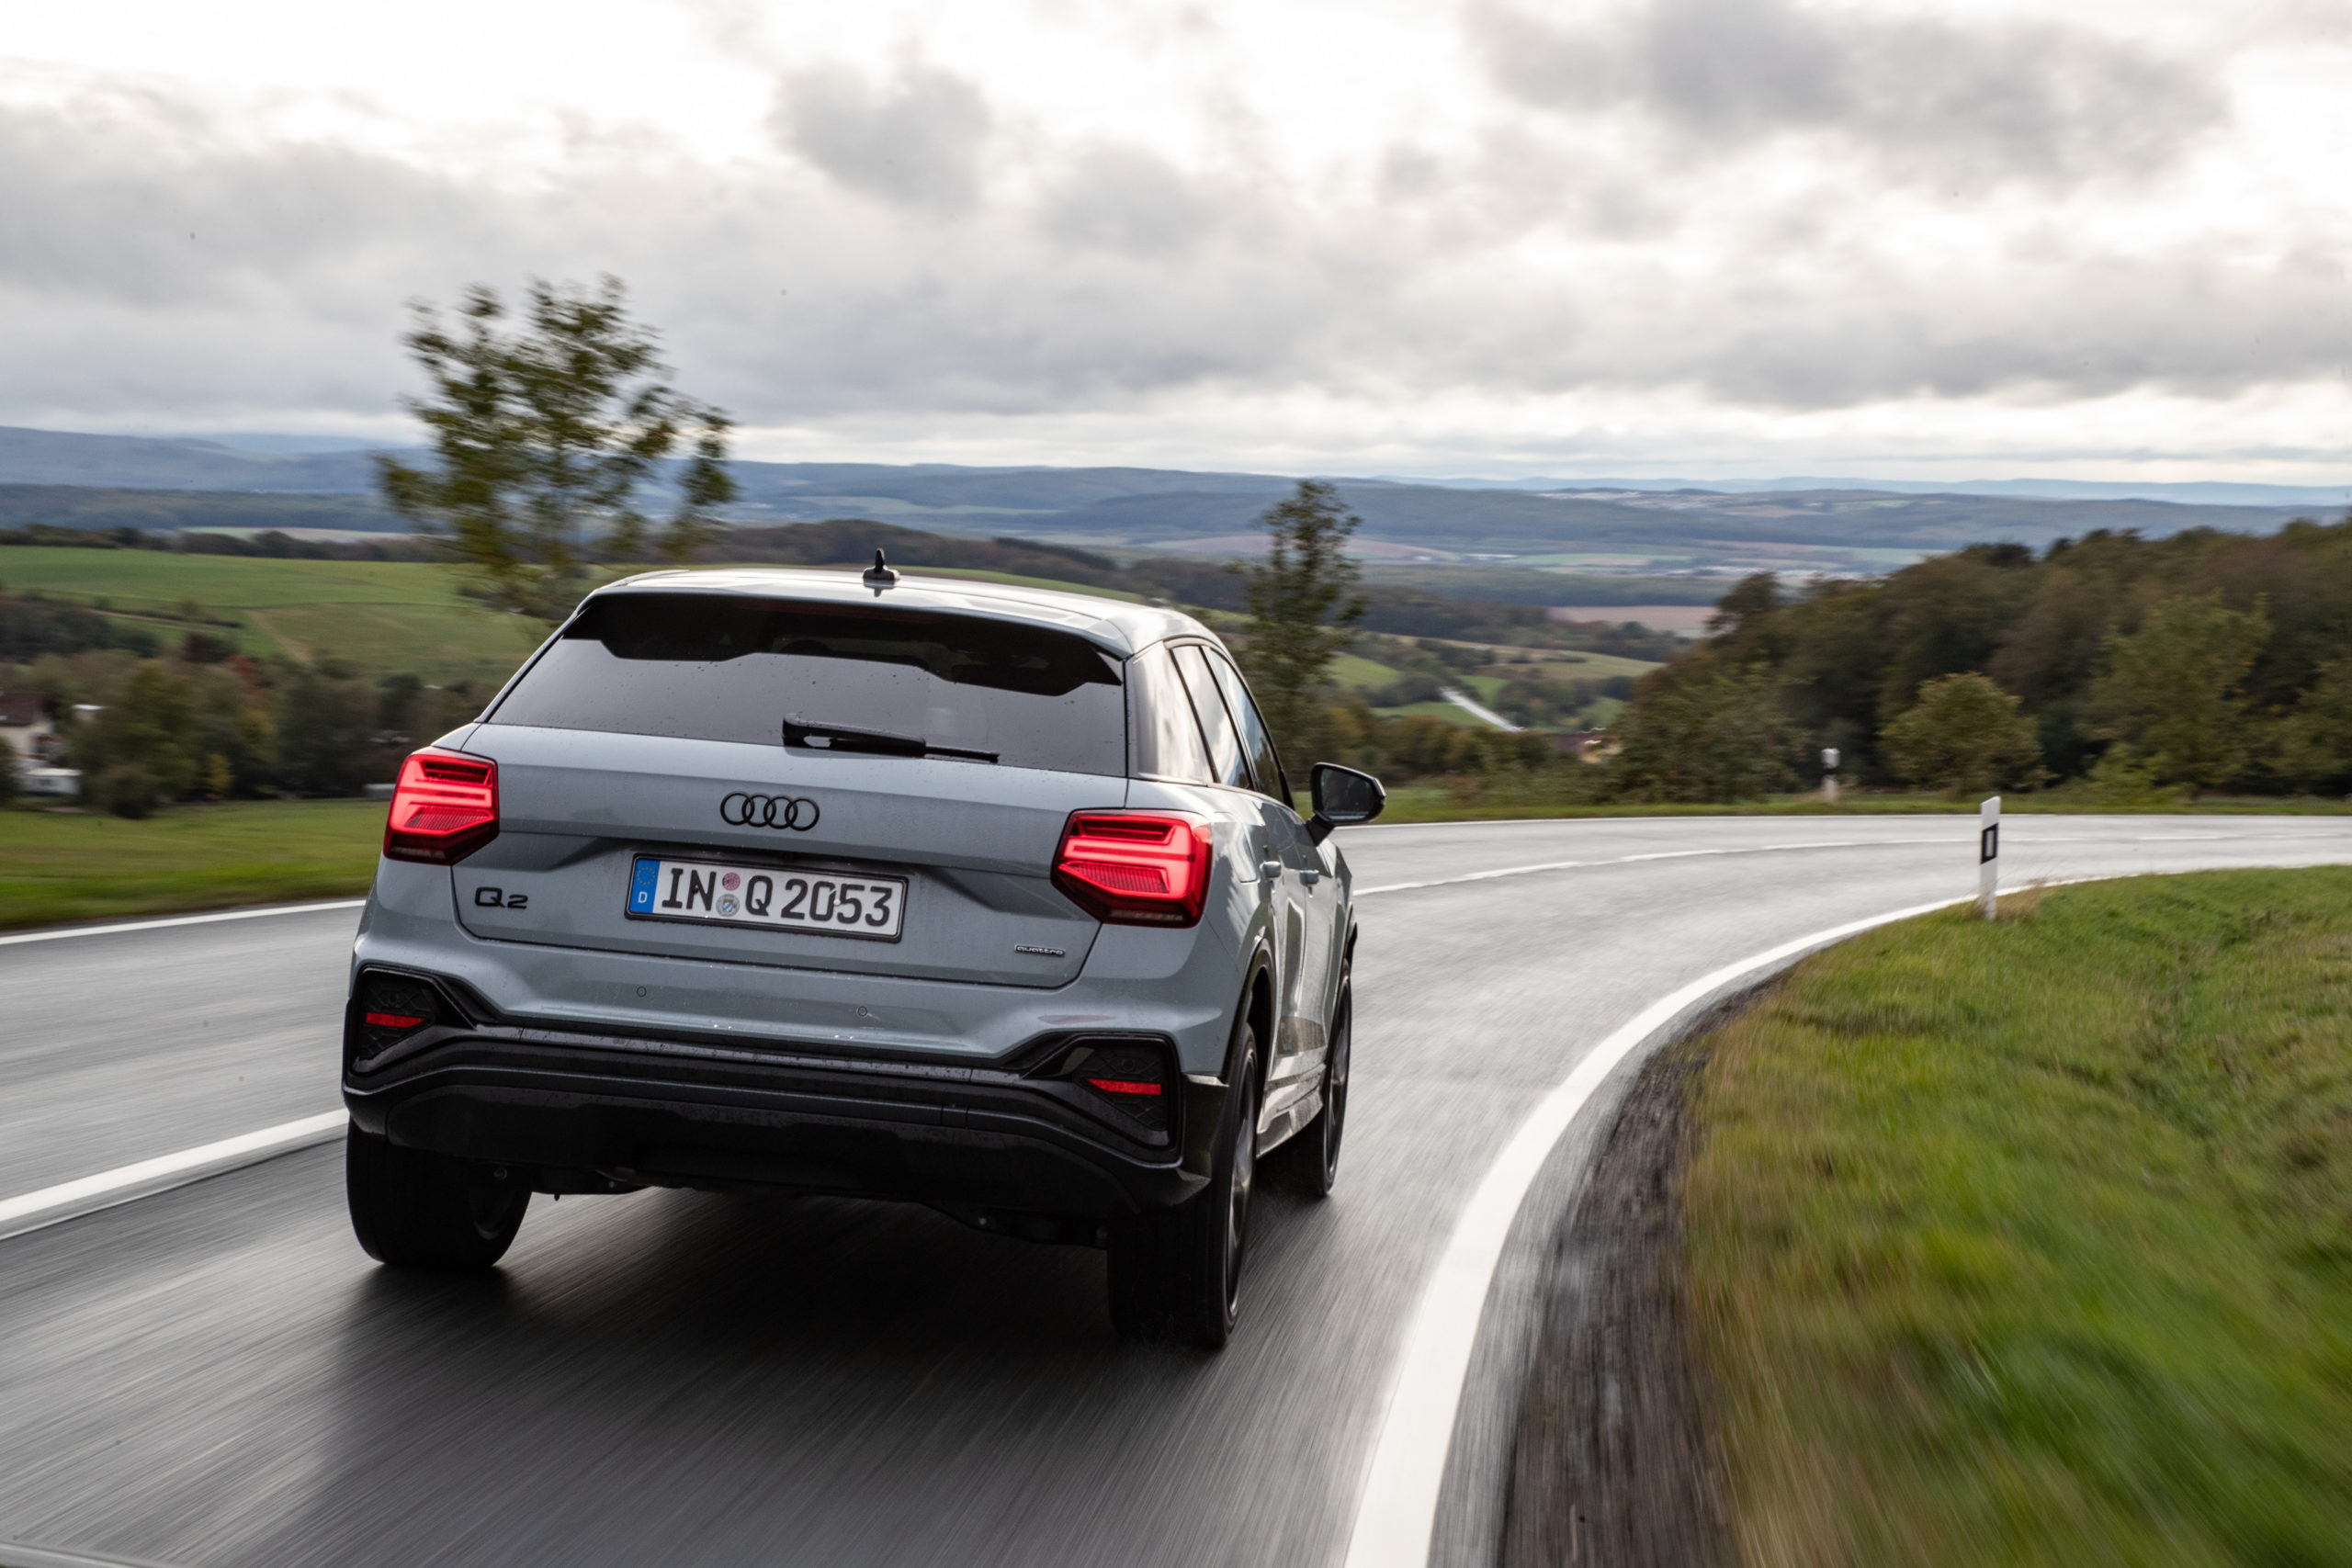 The Audi Q2 in new top form - Brand Spur